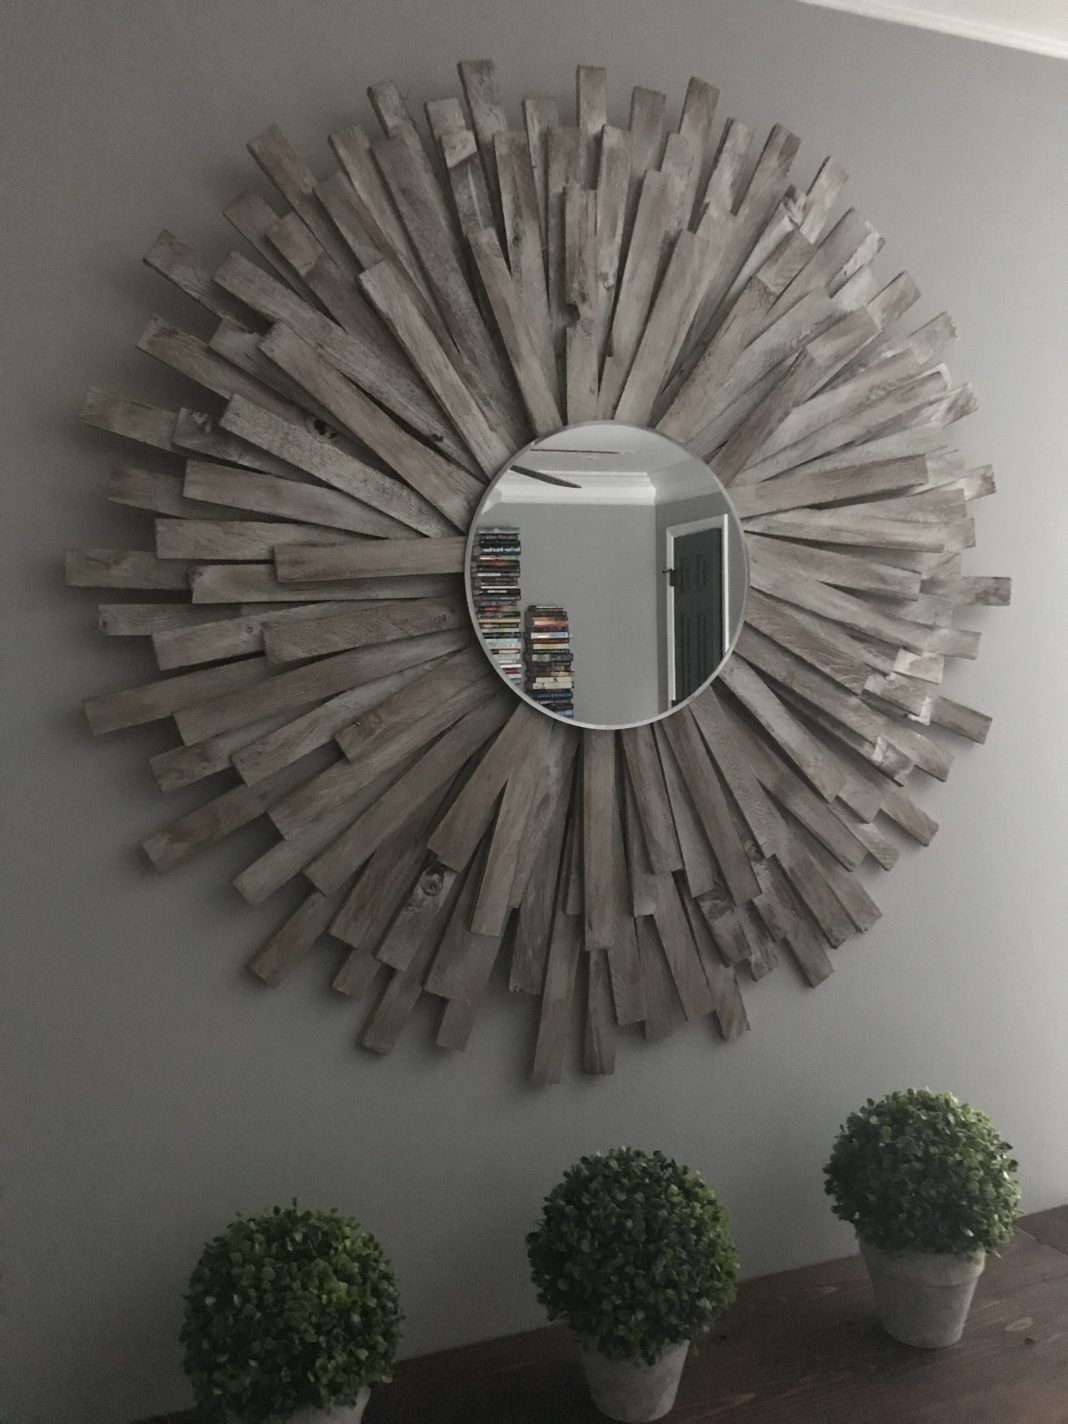 Sunburst Mirror Diy Cheap And Creative Wall Art With Wood Shims